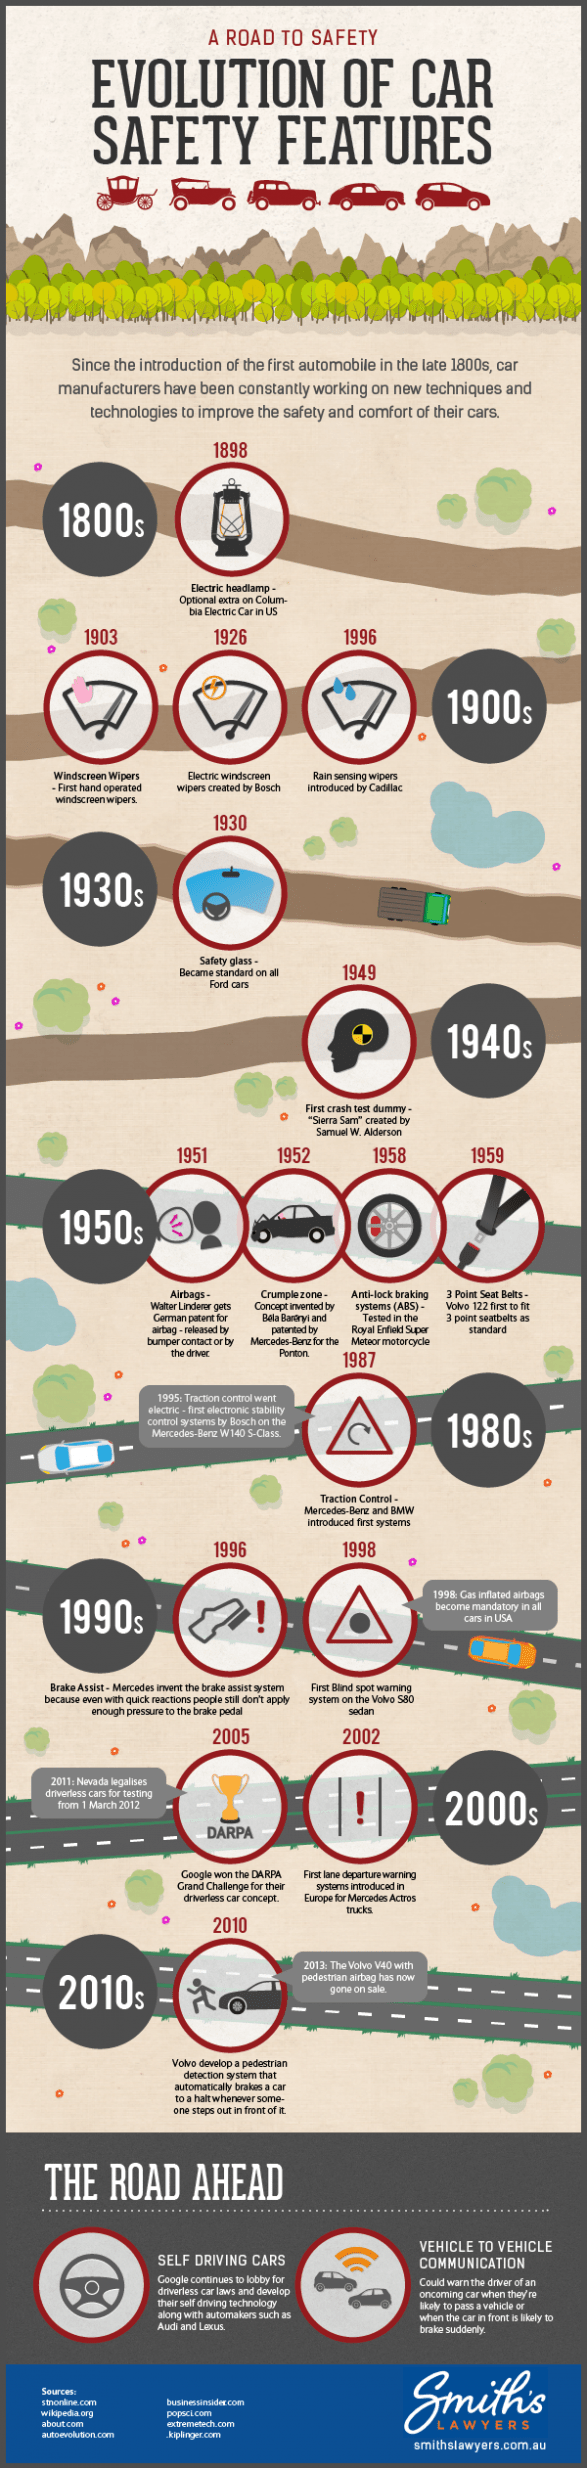 120 Years of Car Safety Evolution